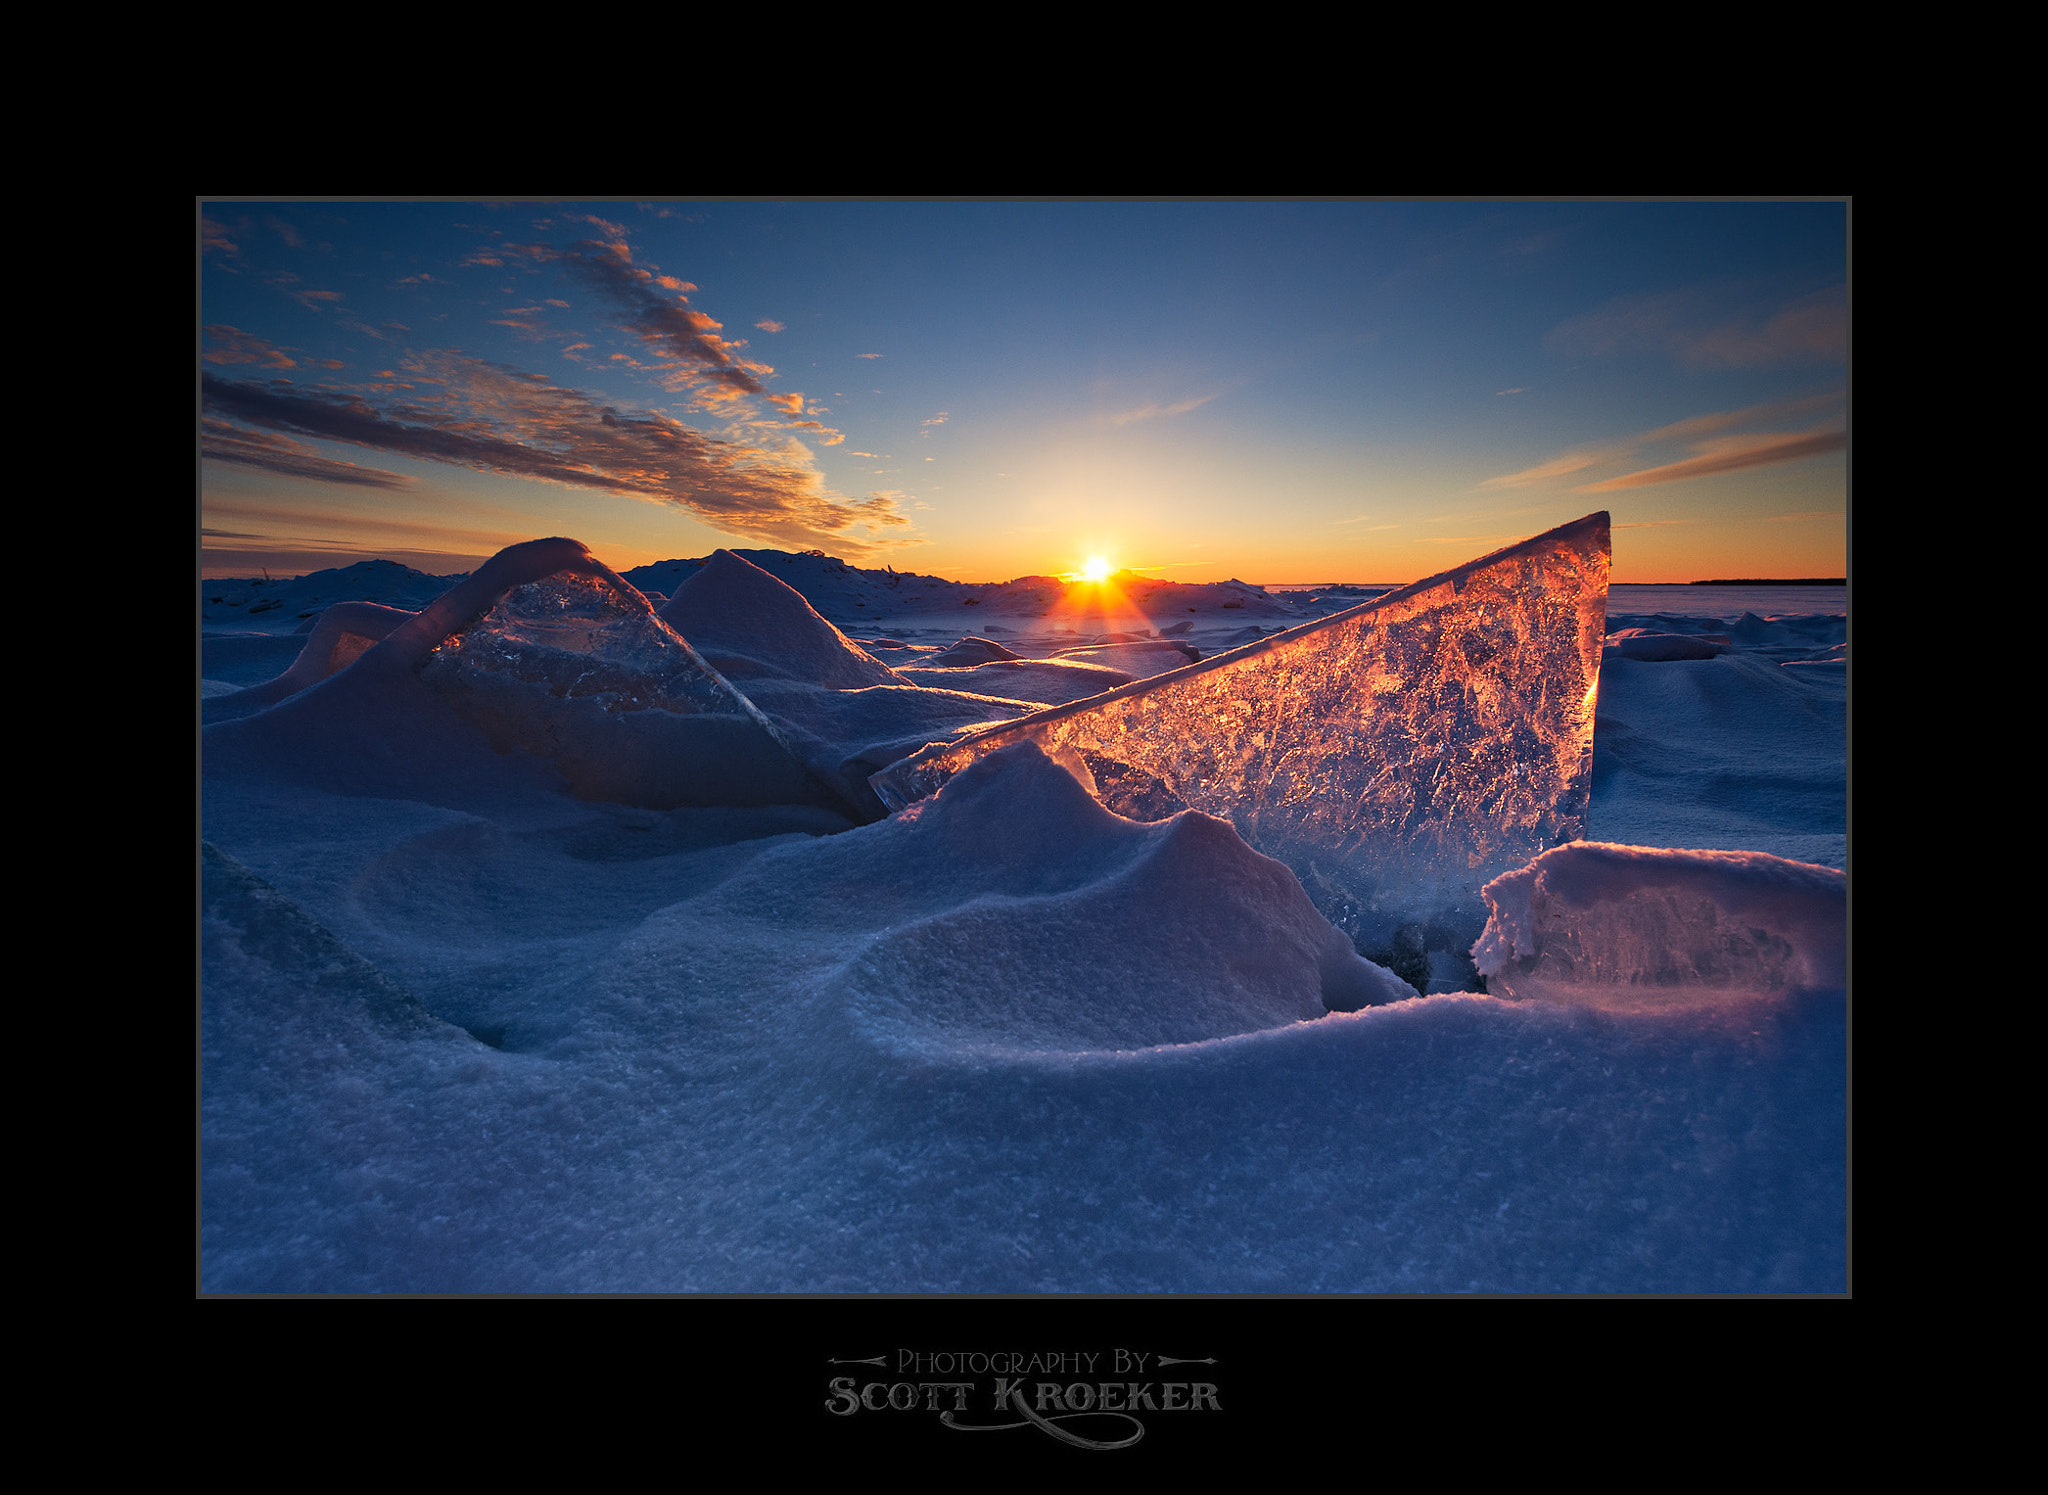 Photograph Plate Ice Sunset by Scott Kroeker on 500px